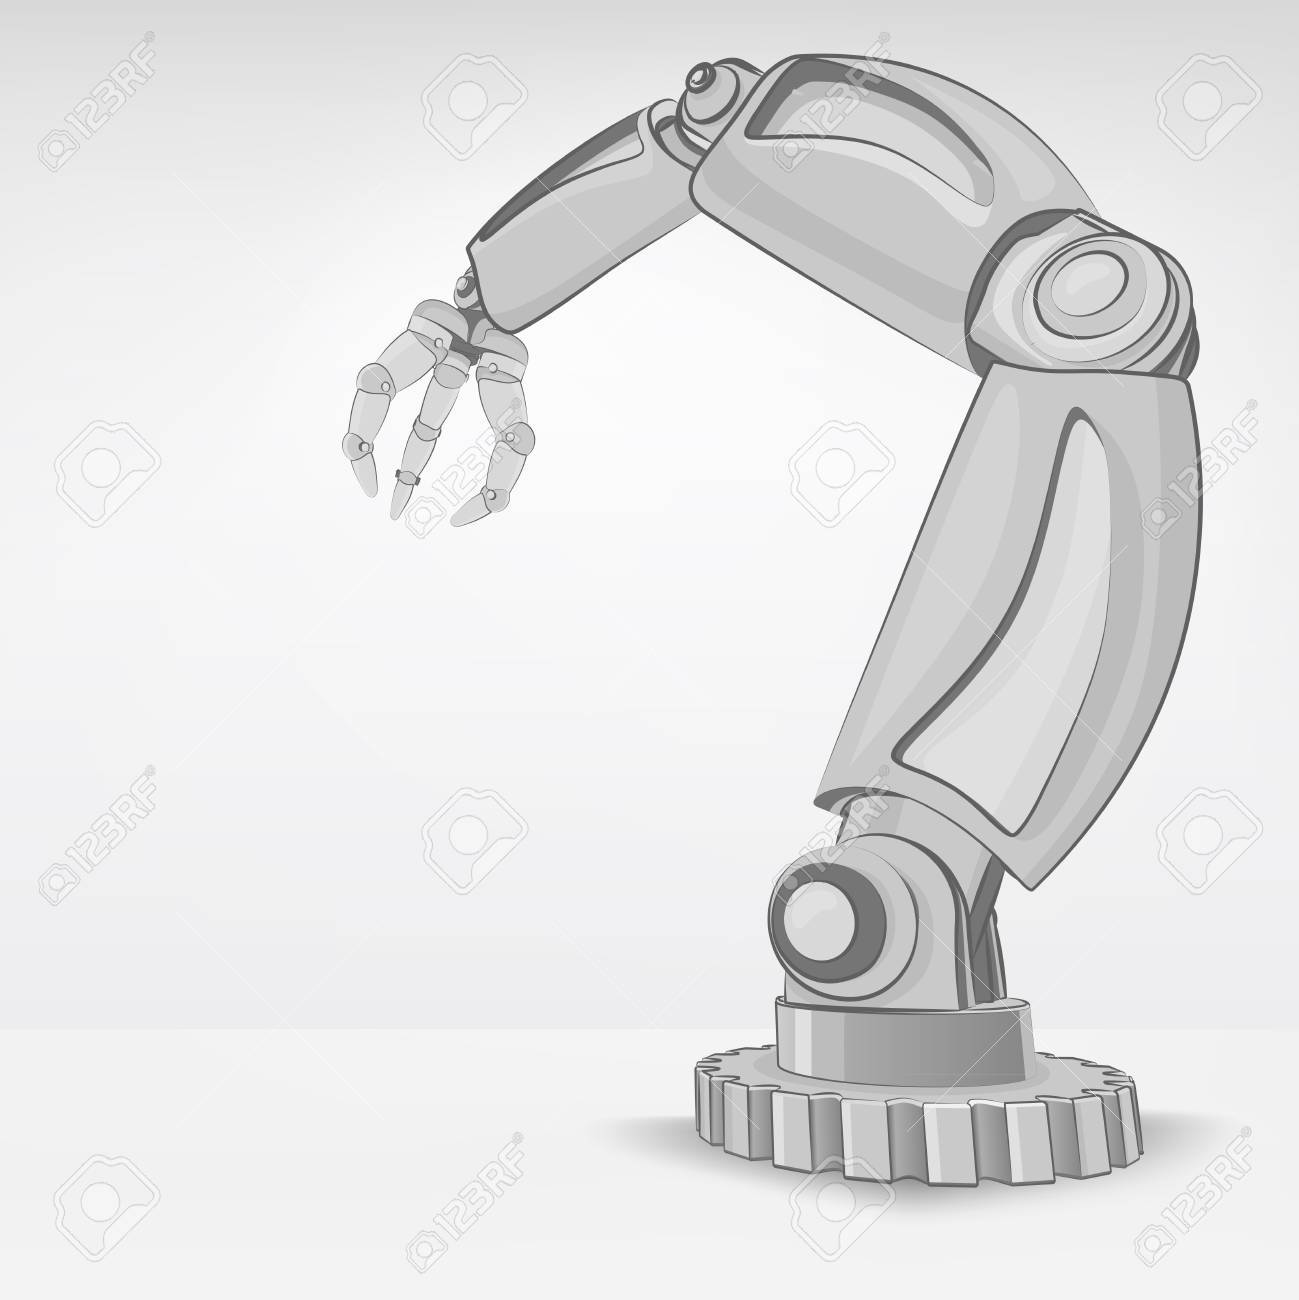 cybernetic robotic hand used for automated manufacture vector illustration Stock Vector - 26641047